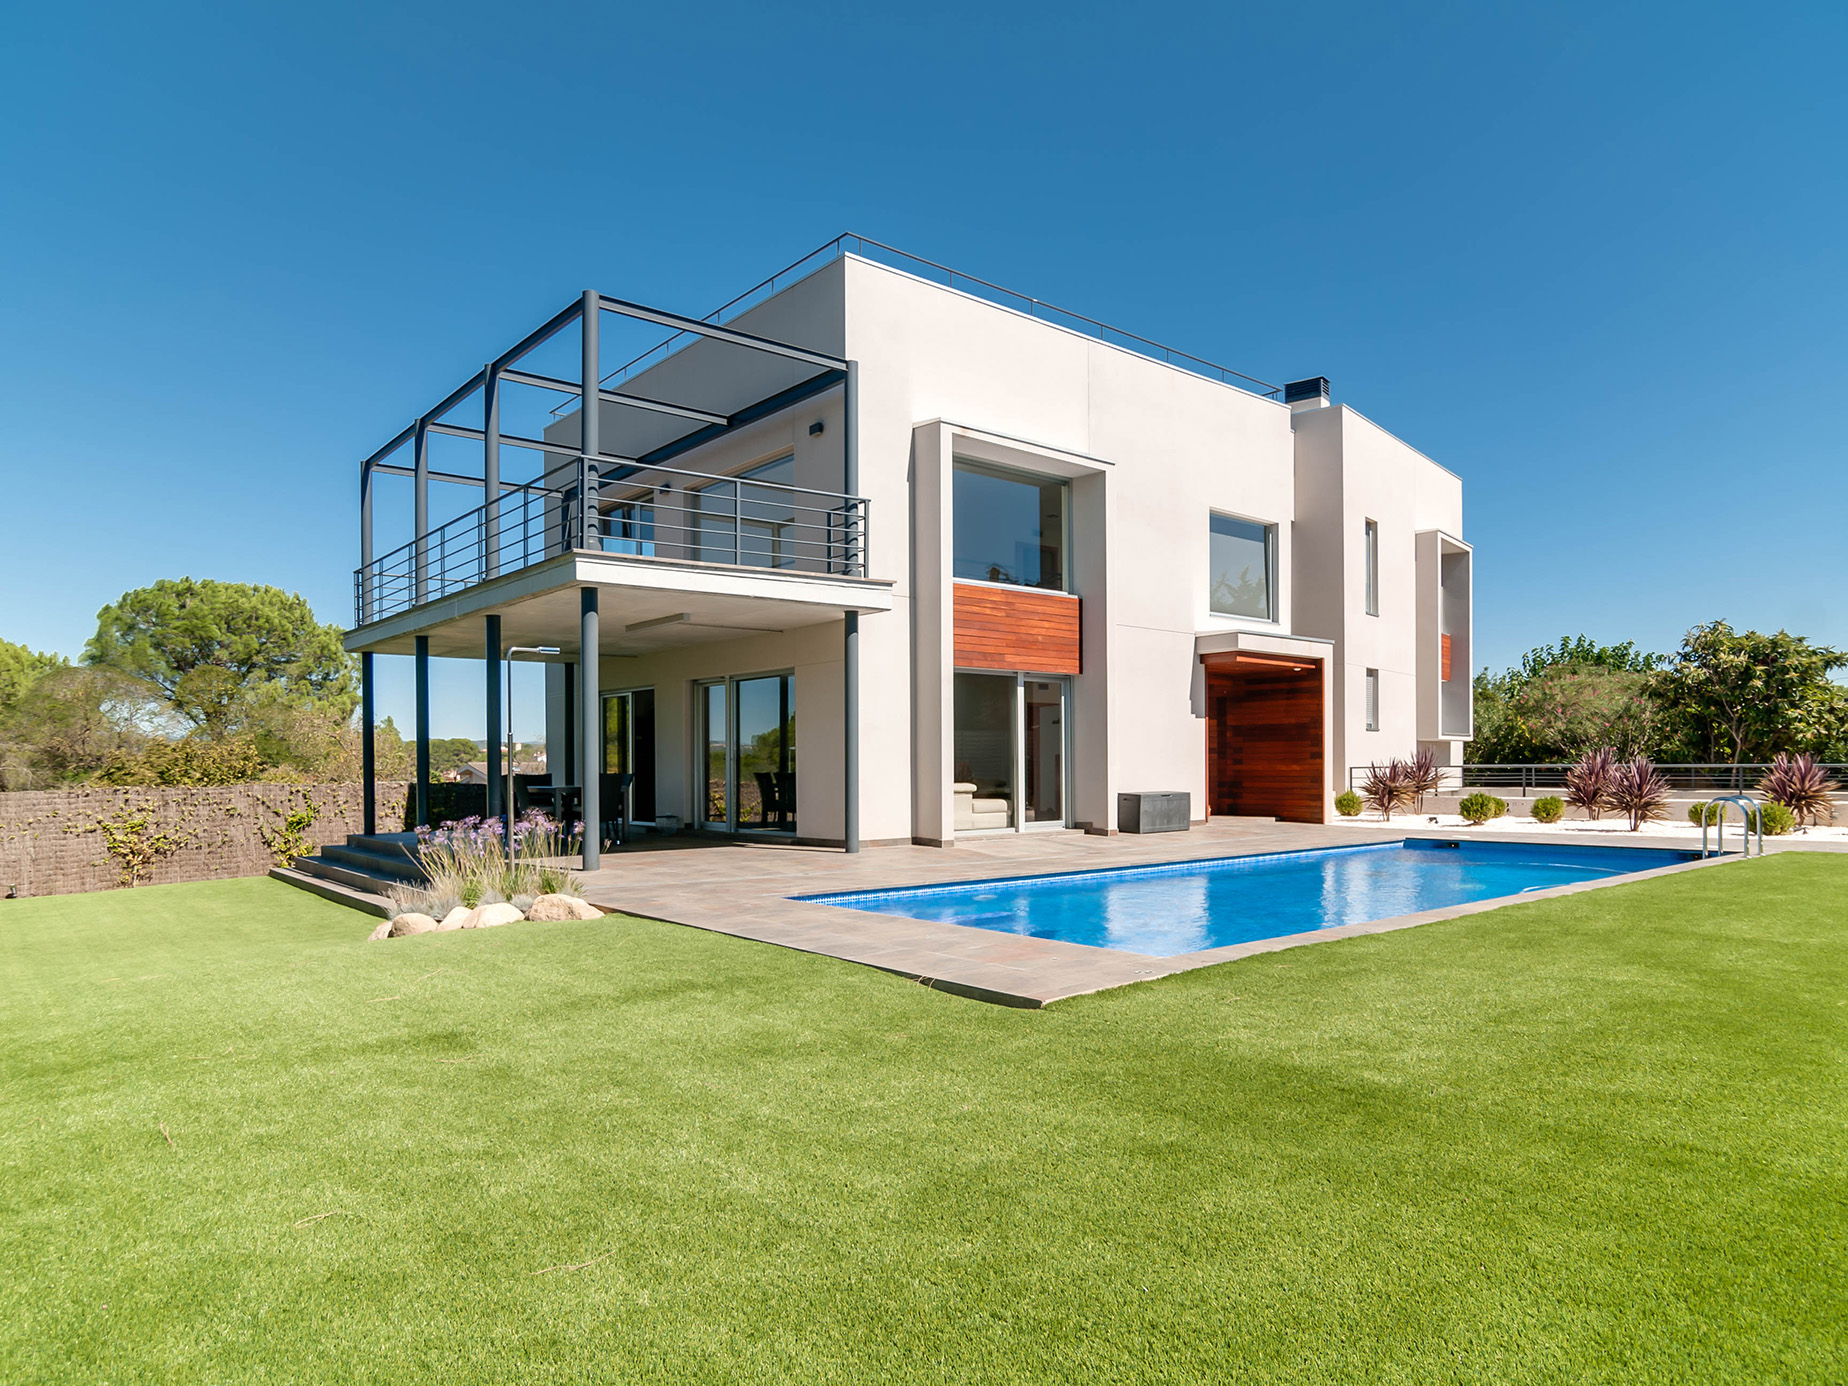 Single Family Home for Sale at Modern and Functional Property in Valldoreix Sant Cugat Del Valles, Barcelona, 08172 Spain